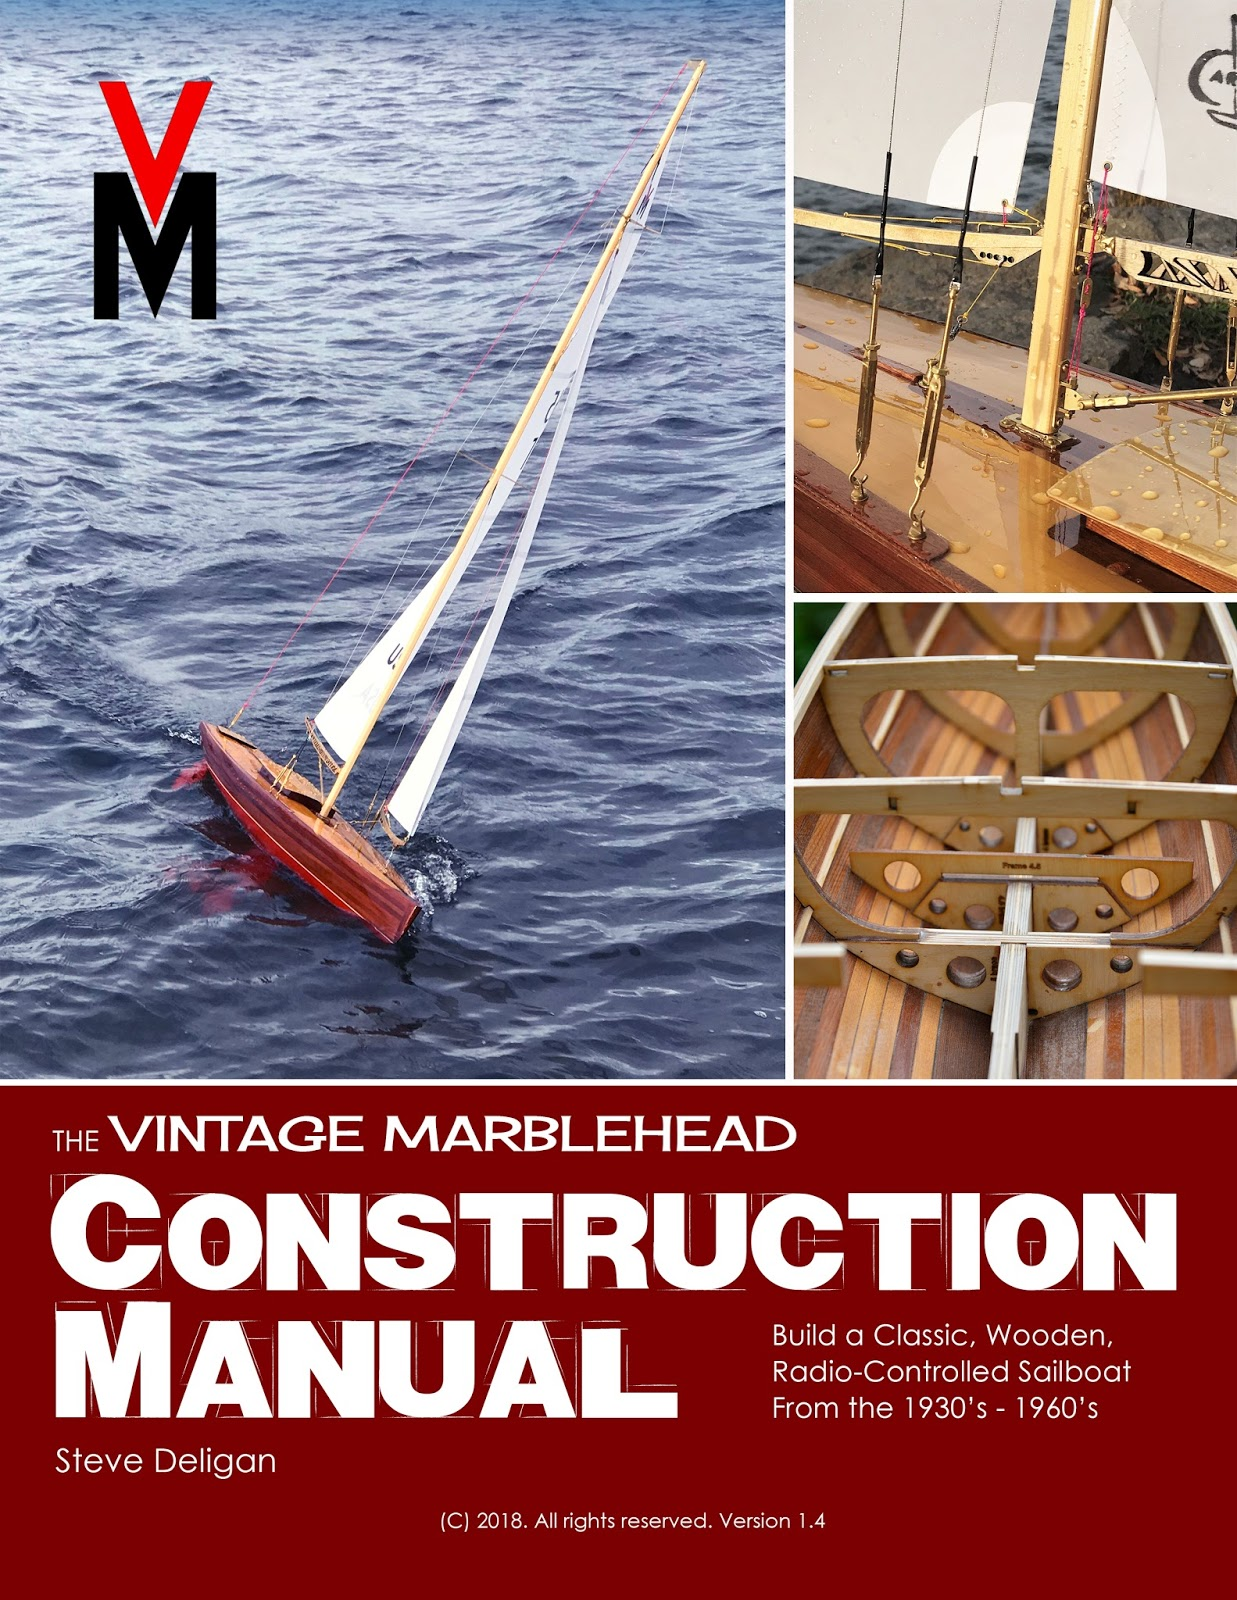 The Vintage Marblehead Construction Manual